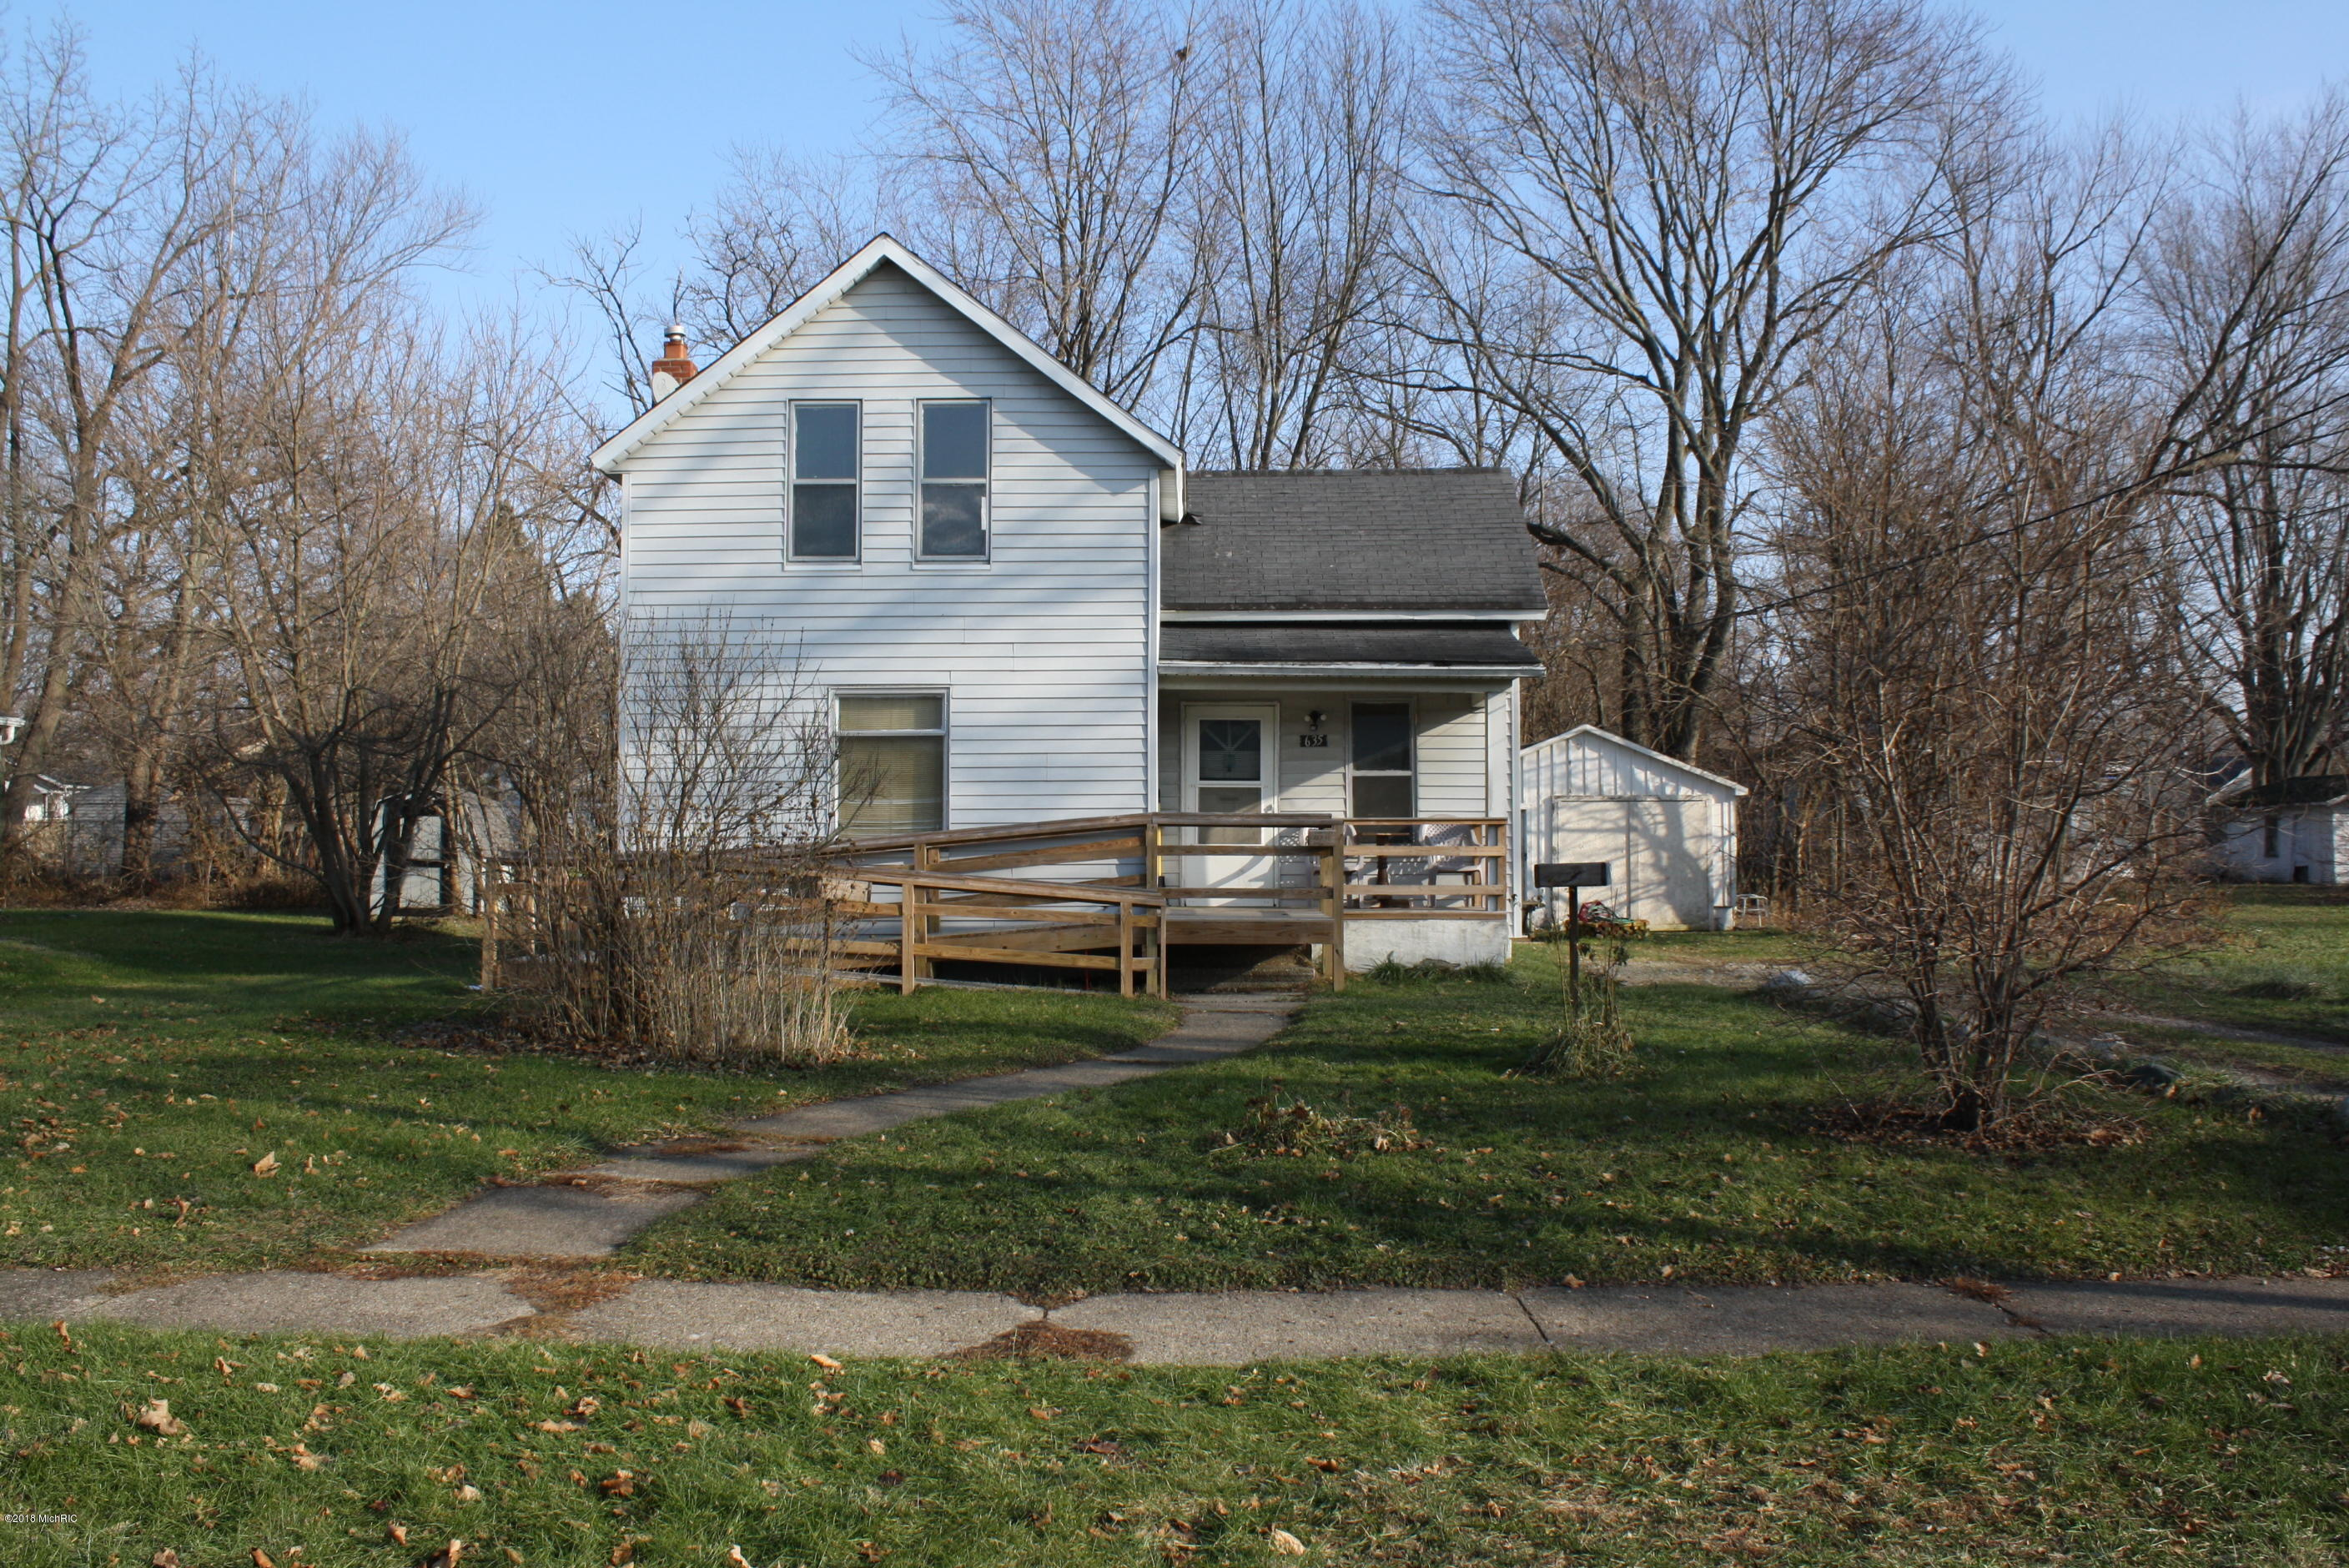 635 11th, Niles, Michigan 49120, 2 Bedrooms Bedrooms, ,1 BathroomBathrooms,Residential,For Sale,11th,18057997